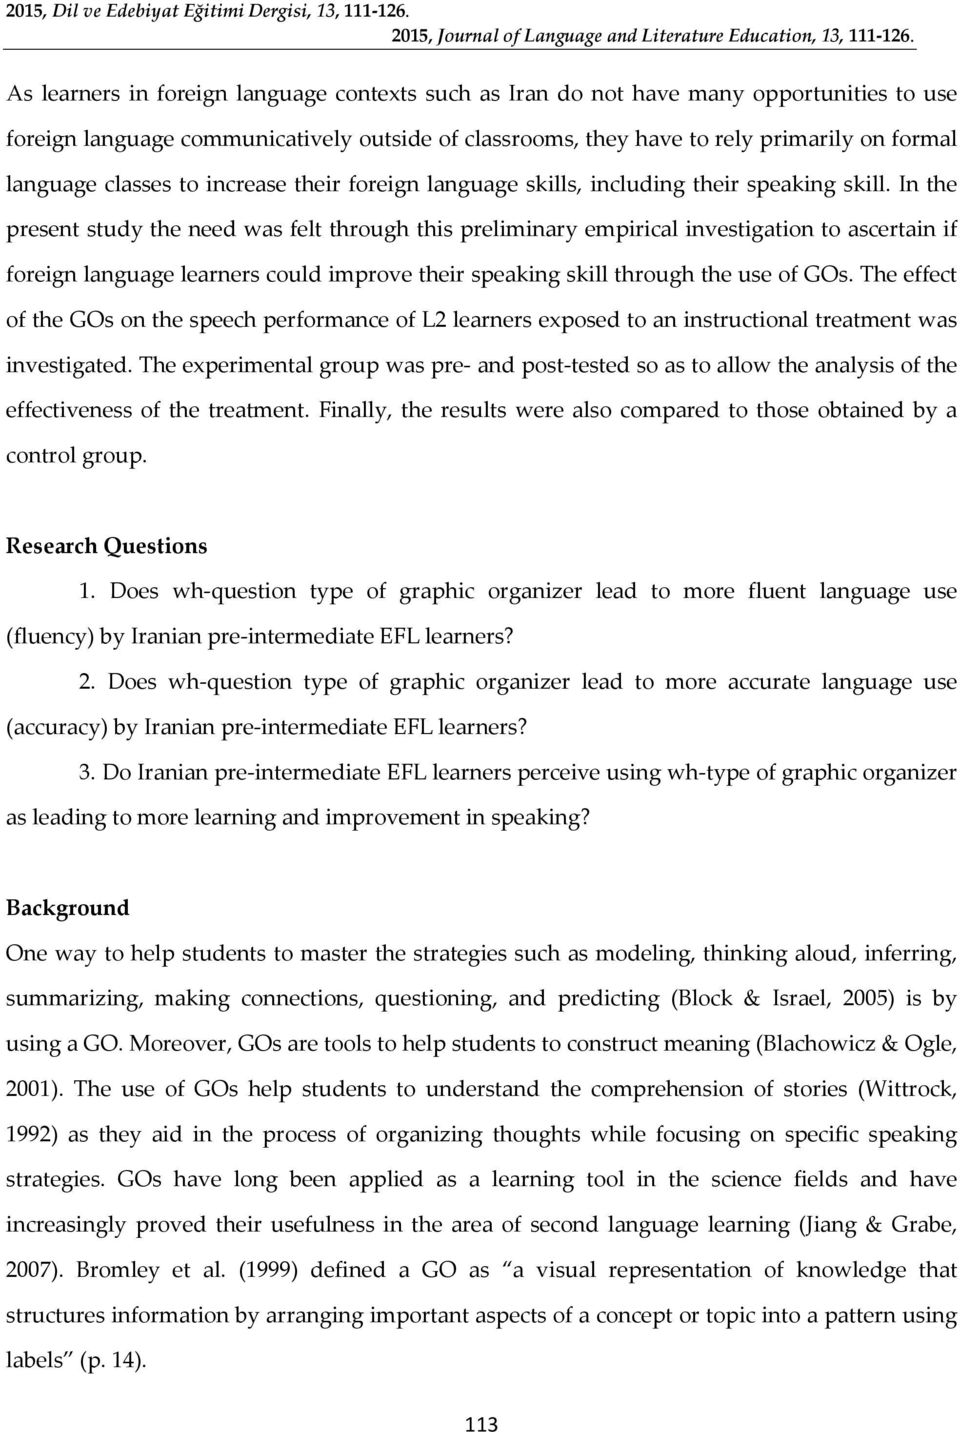 In the present study the need was felt through this preliminary empirical investigation to ascertain if foreign language learners could improve their speaking skill through the use of GOs.